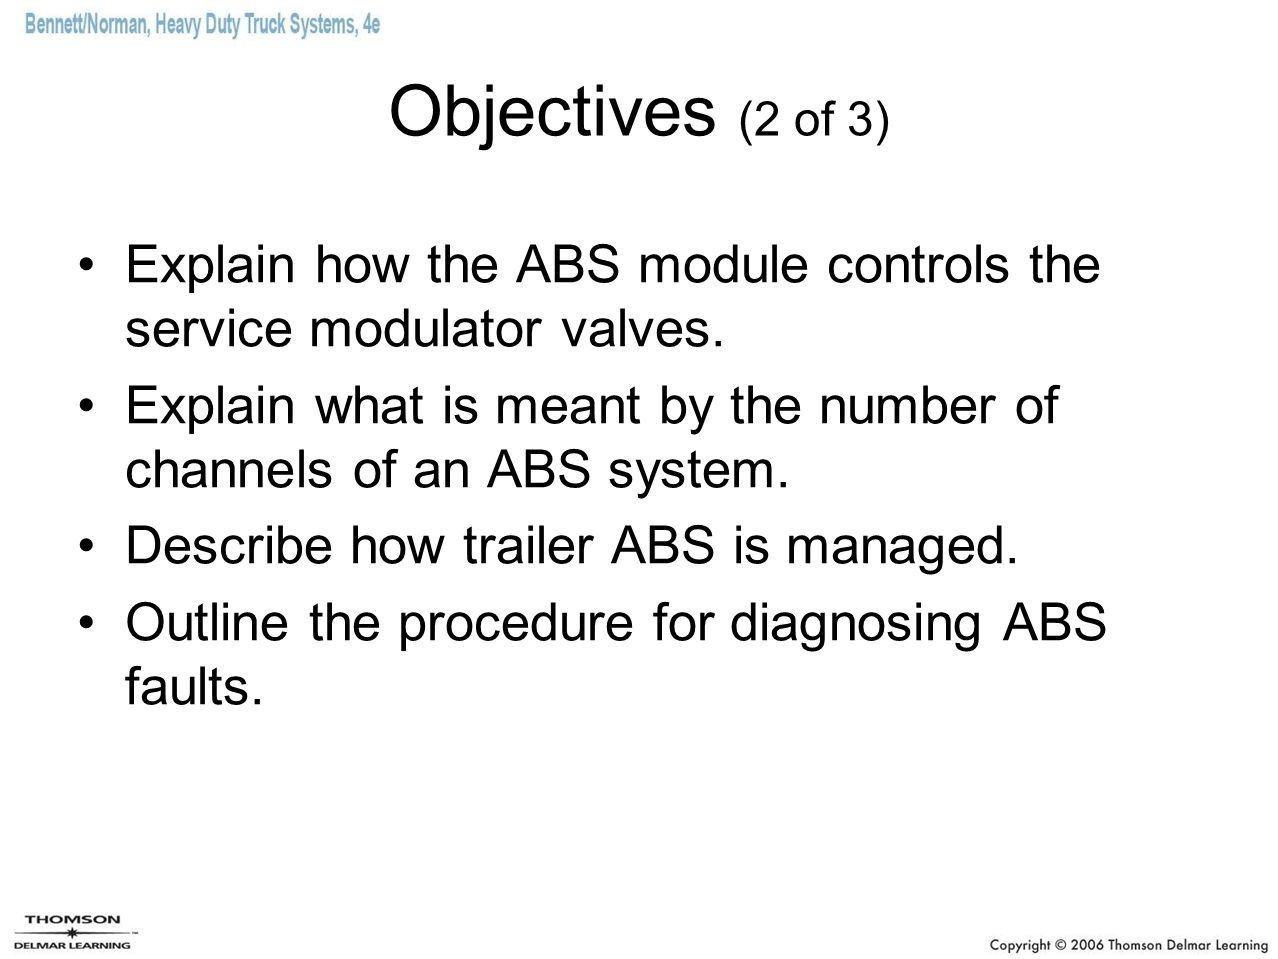 Objectives (2 of 3) Explain how the ABS module controls the service modulator valves.